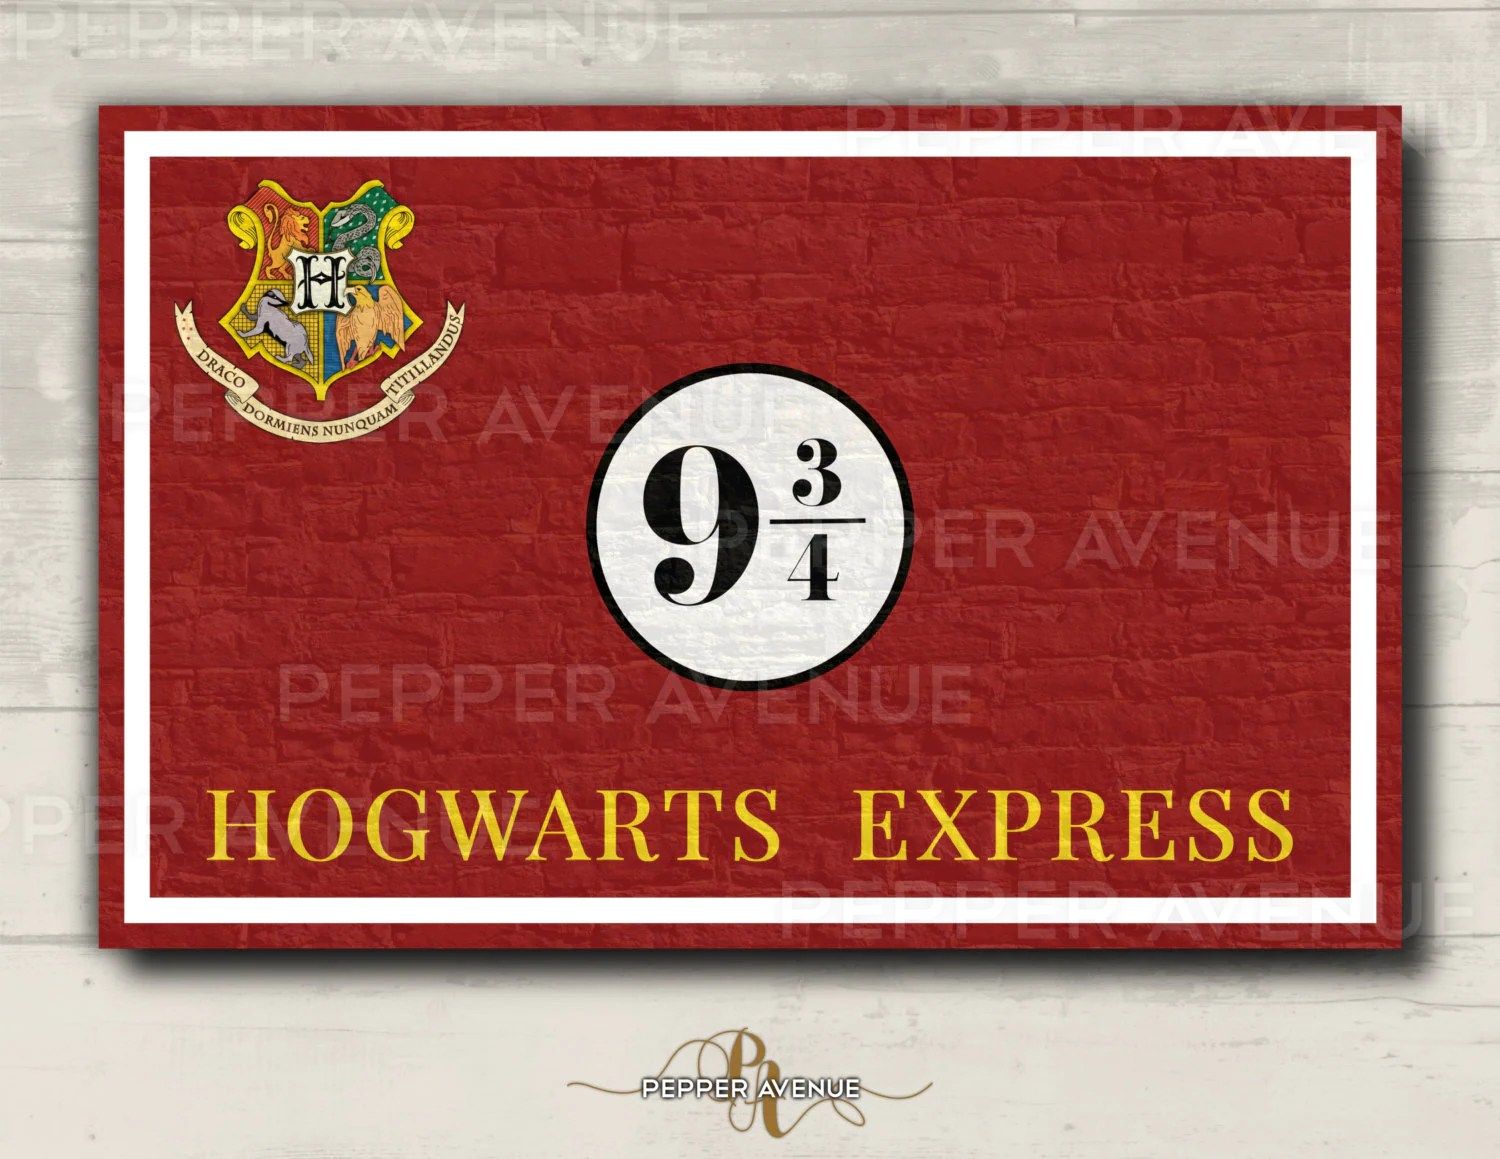 Everyone whos ever read or watched Harry Potter has probably dreamed of the same thing getting their Hogwarts letter traveling on the Hogwarts Express